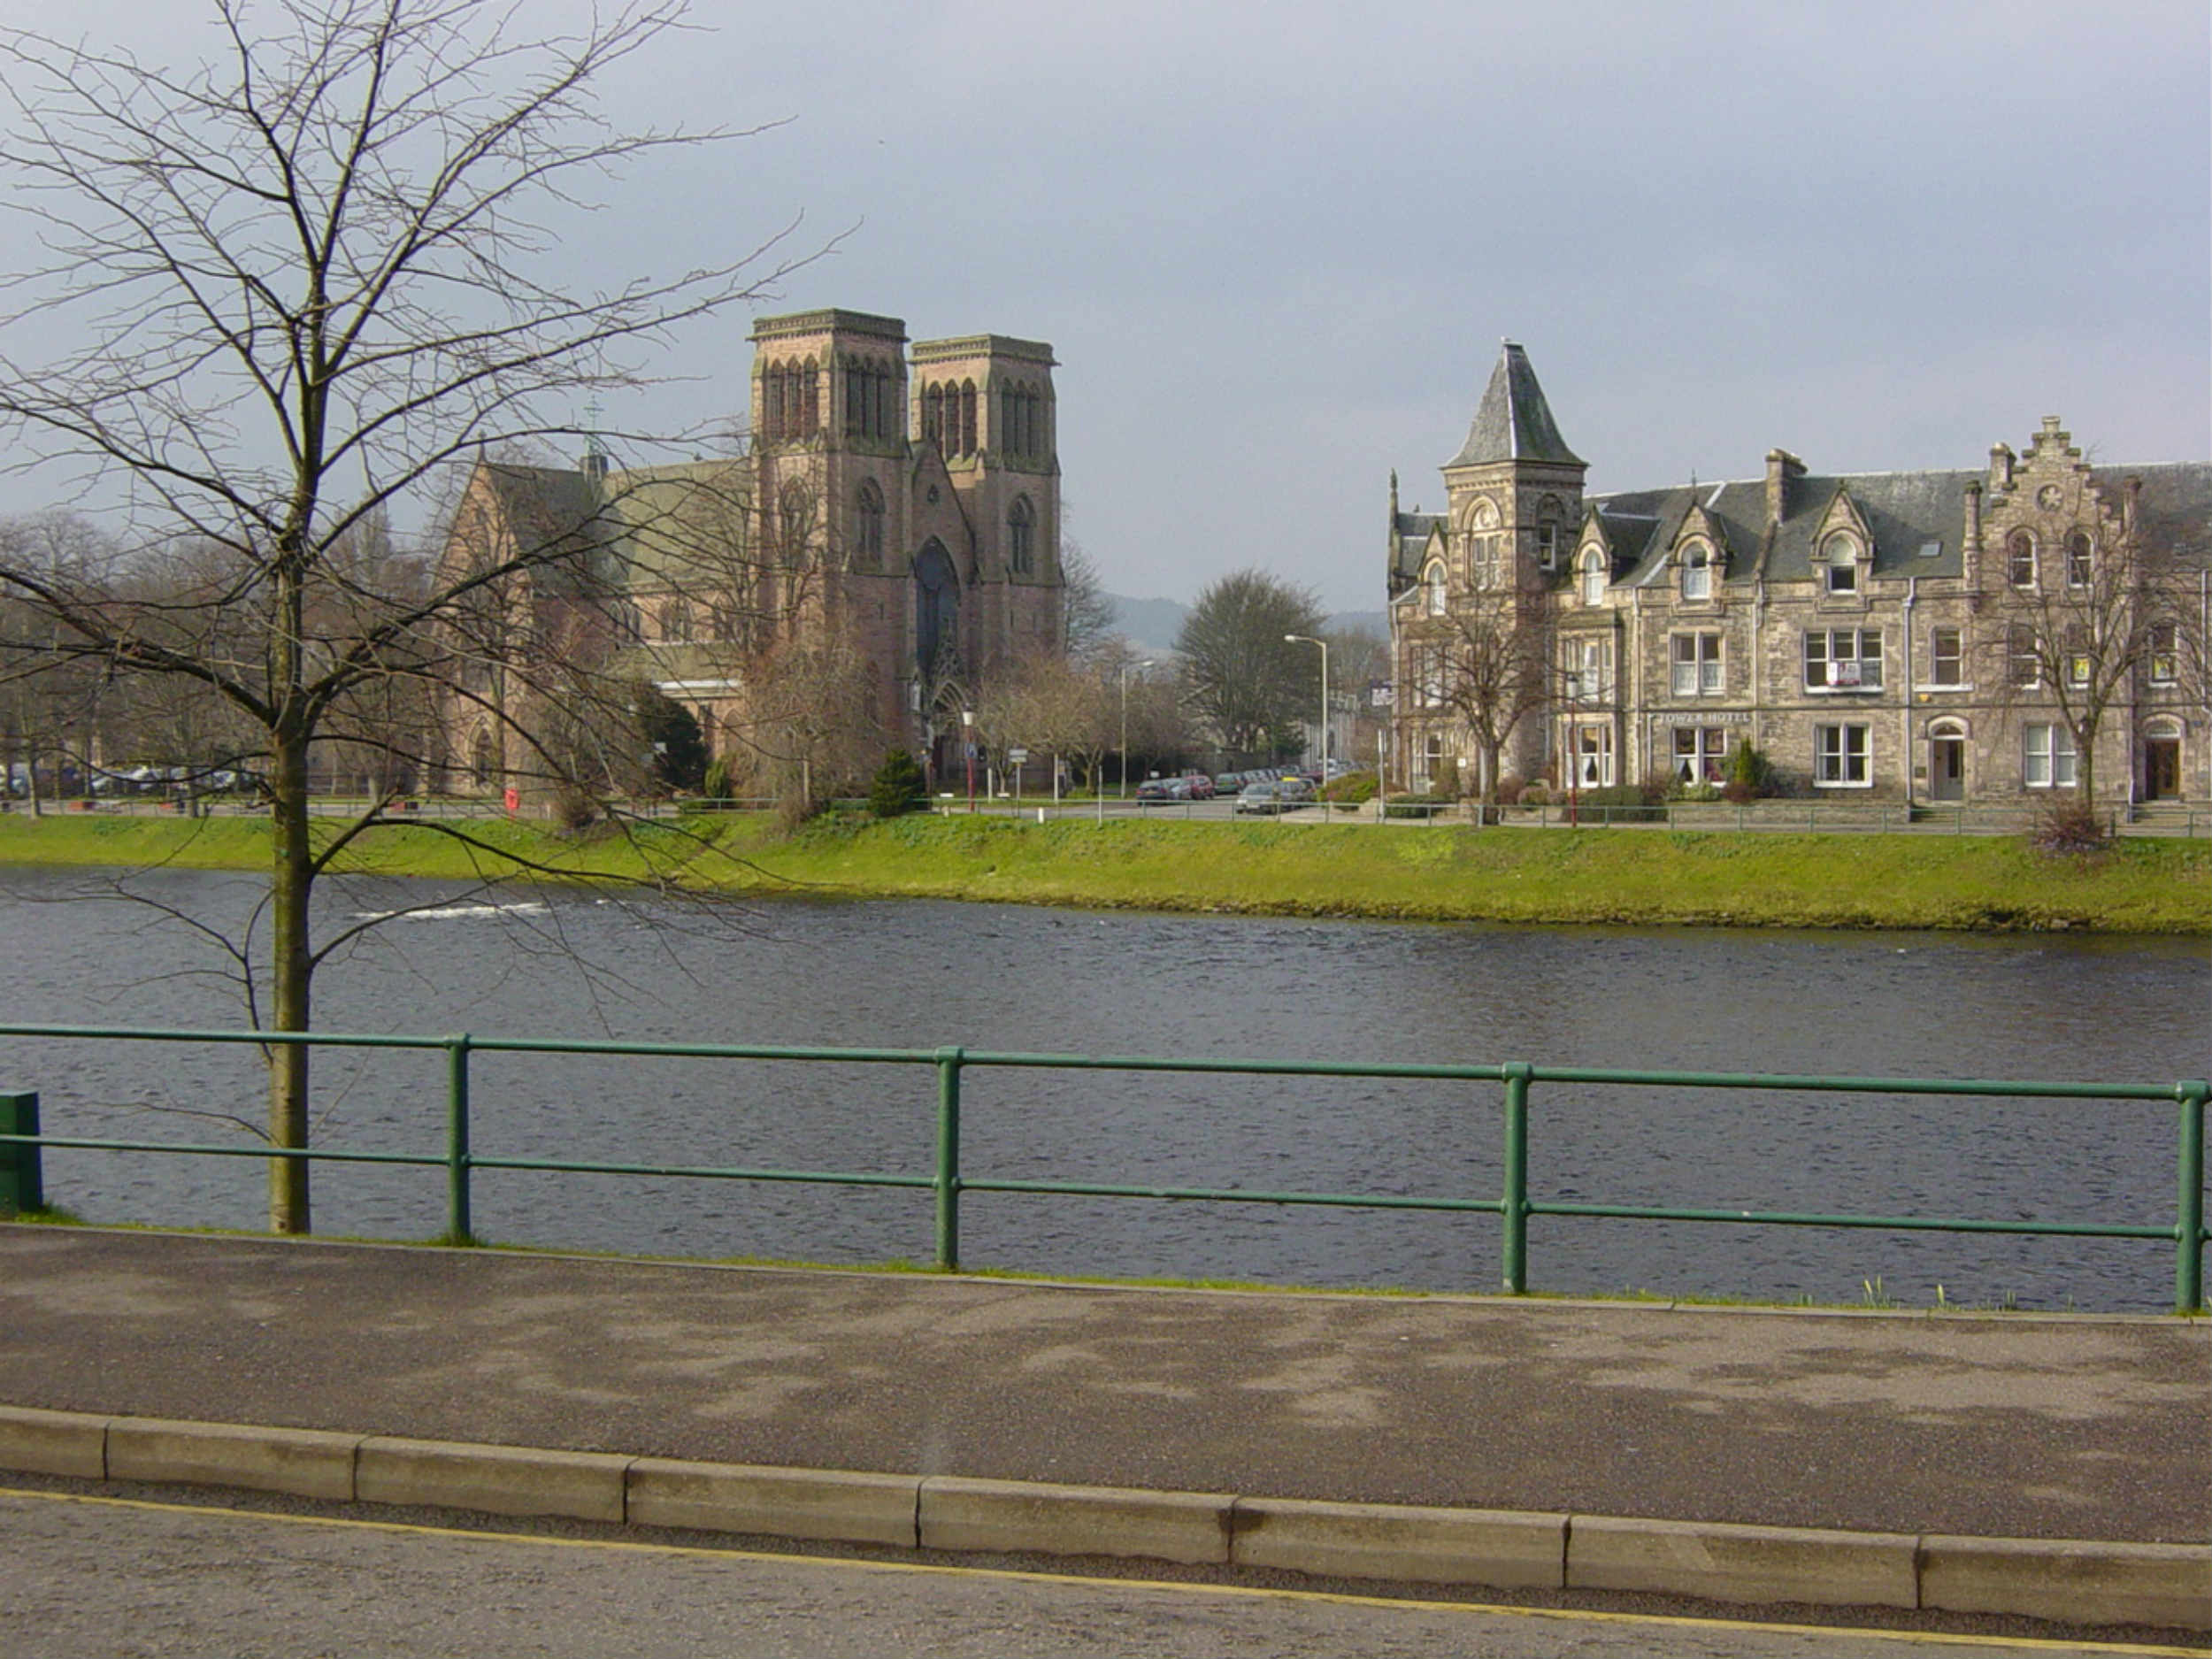 """A TRIPADVISOR reviewer has riled the people of Inverness by claiming the Highland capital is unsafe to wander after noon. The reviewer, known only as Kat W, claims to be local and warns visitors to carry a panic alarm in the """"quite dangerous"""" city. Other gems include not stopping under any circumstances if someone shouts """"Oi!"""" and avoiding Saturday afternoons altogether. The need for Inverness """"safety tips"""" has caused widespread bafflement and irritation, not least because Highlands residents are half as likely to become a victim of crime than people living in Glasgow. Kat W's ?Safety tips for Inverness? were shared on social media a few days ago and are introduced: ?Inverness is a high crime area and is quite dangerous. """"This will never be publicly admitted as it might affect the tourist industry. Here is some advice from a local."""""""